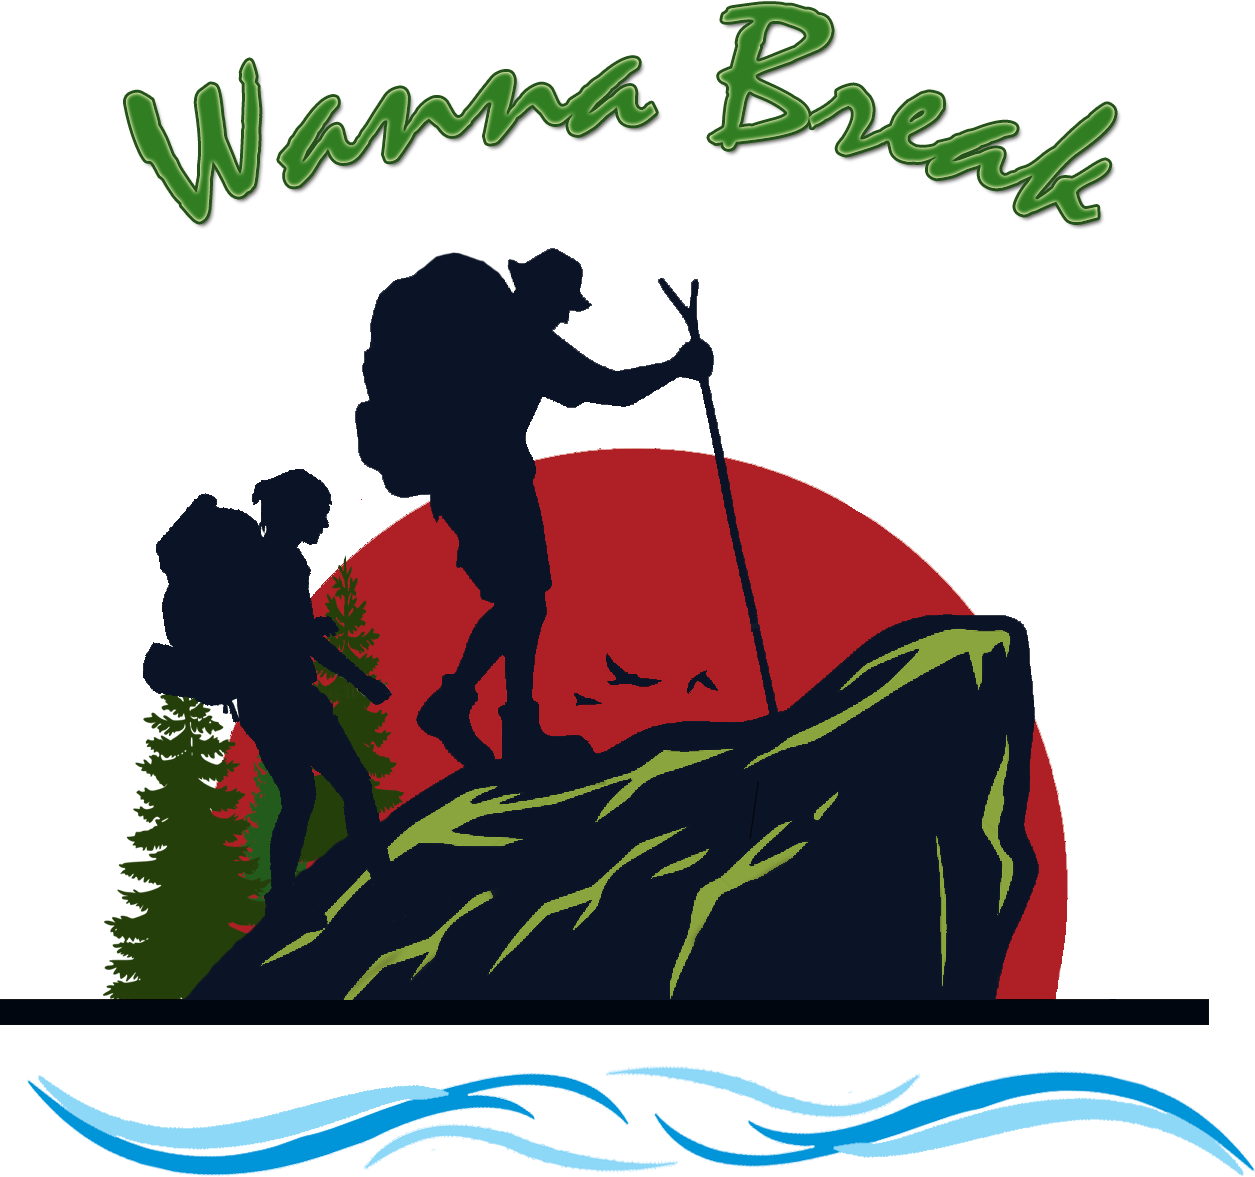 Wanna break we have. Hike clipart rural tourism